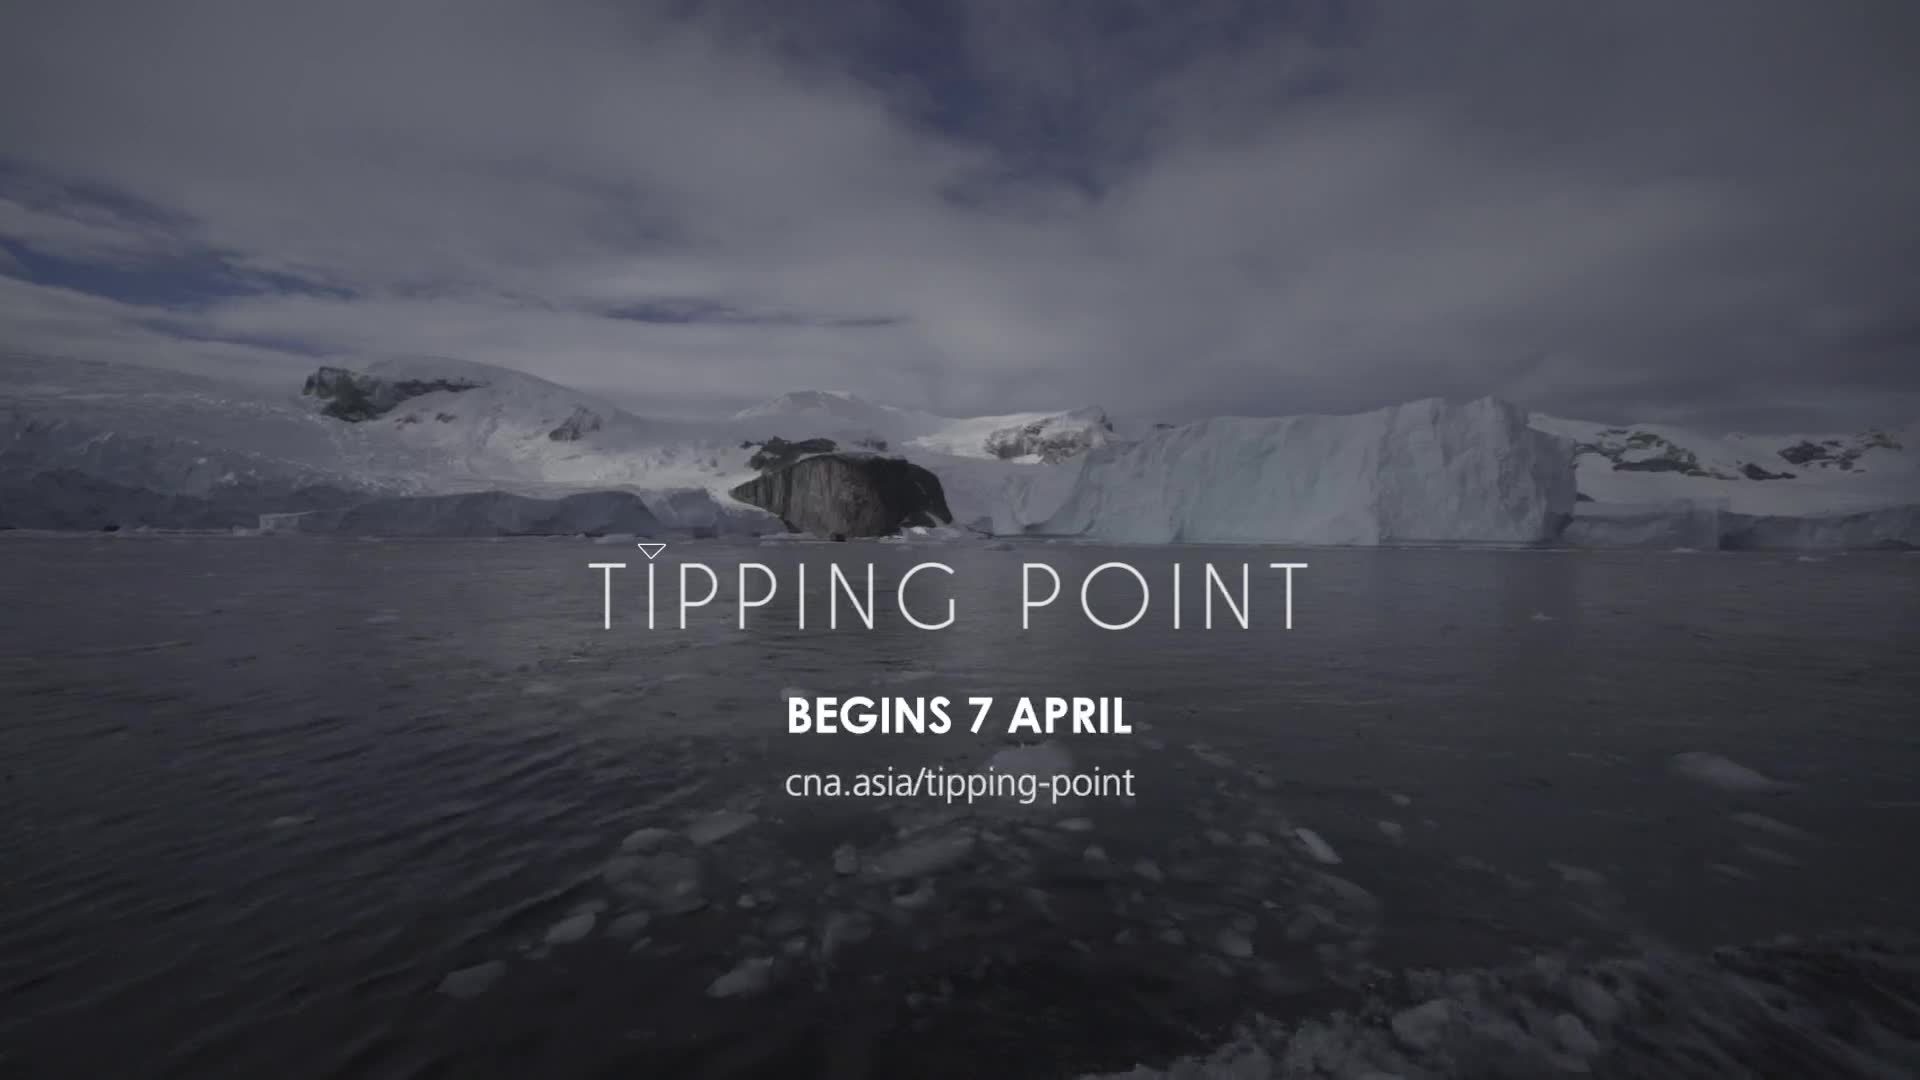 Tipping Point Series Premiering Trailer